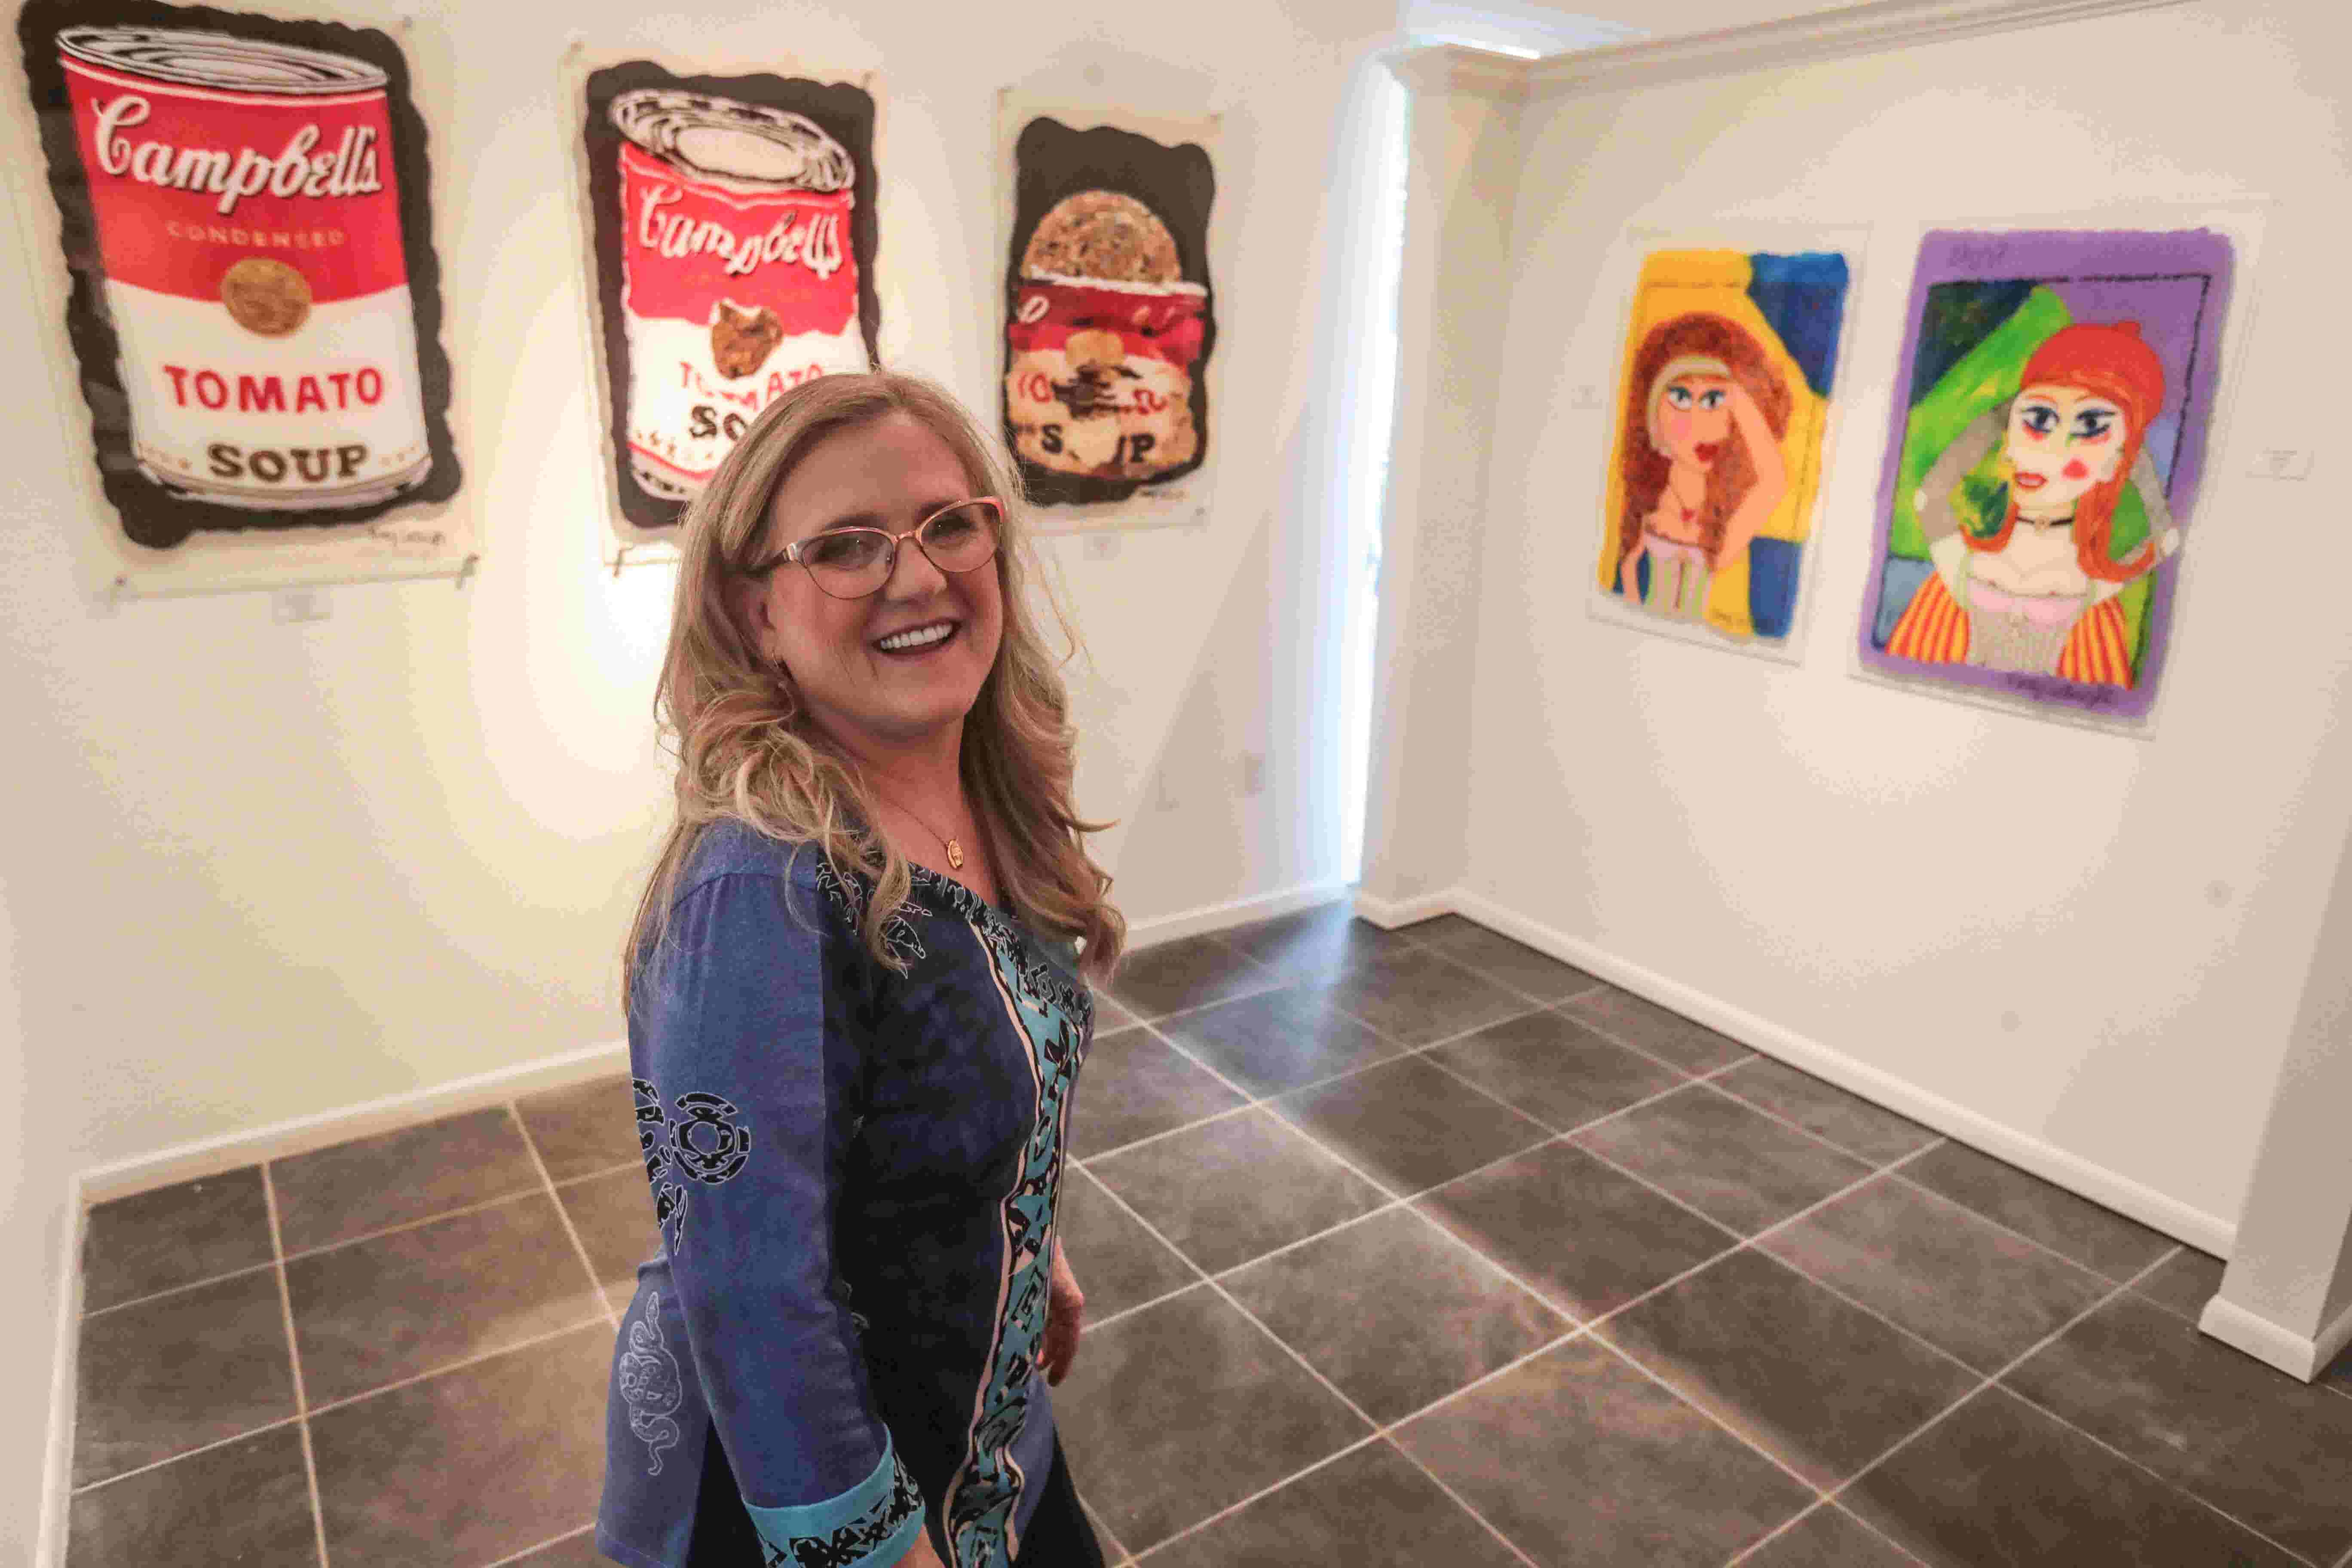 Meet Nancy Cartwright Voice Of Bart Simpson Who Now Says Eat My Shorts Through Her Art